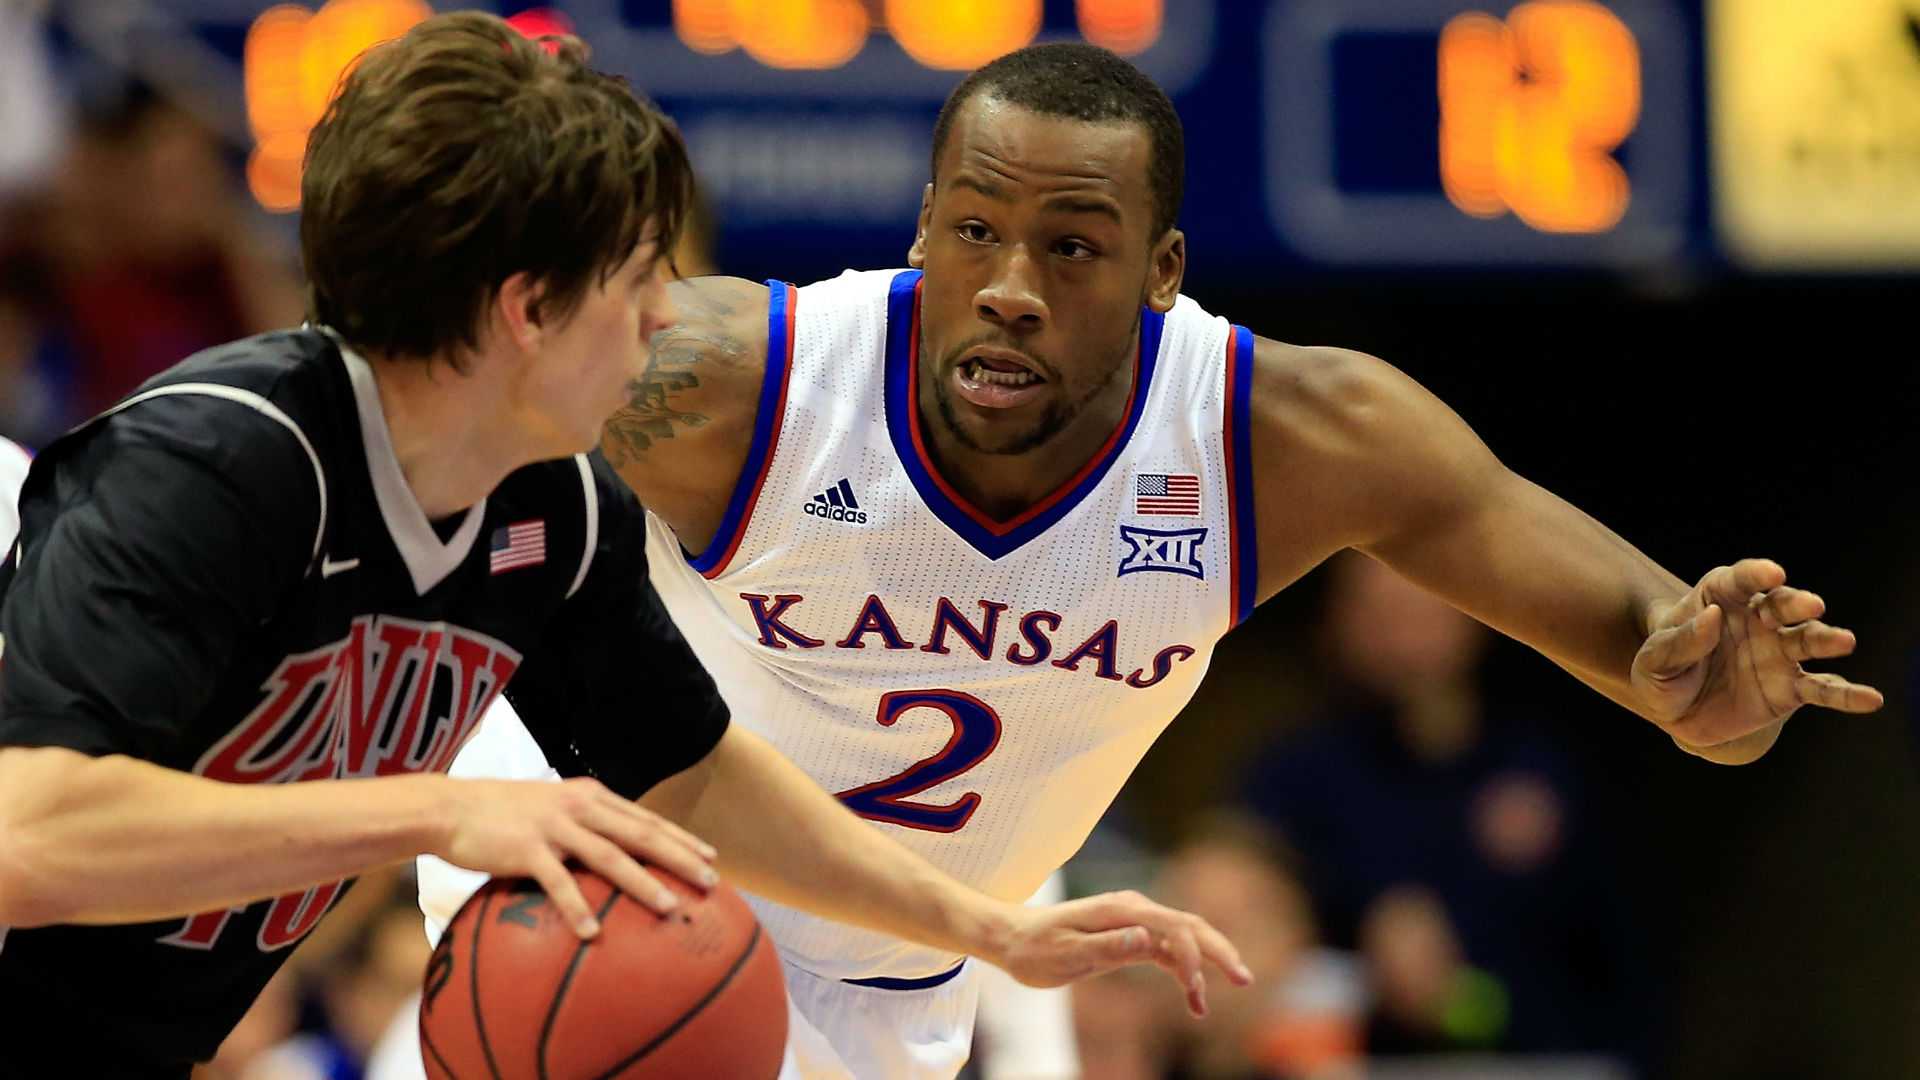 Cliff Alexander says mom was 'tricked into' impermissible benefits